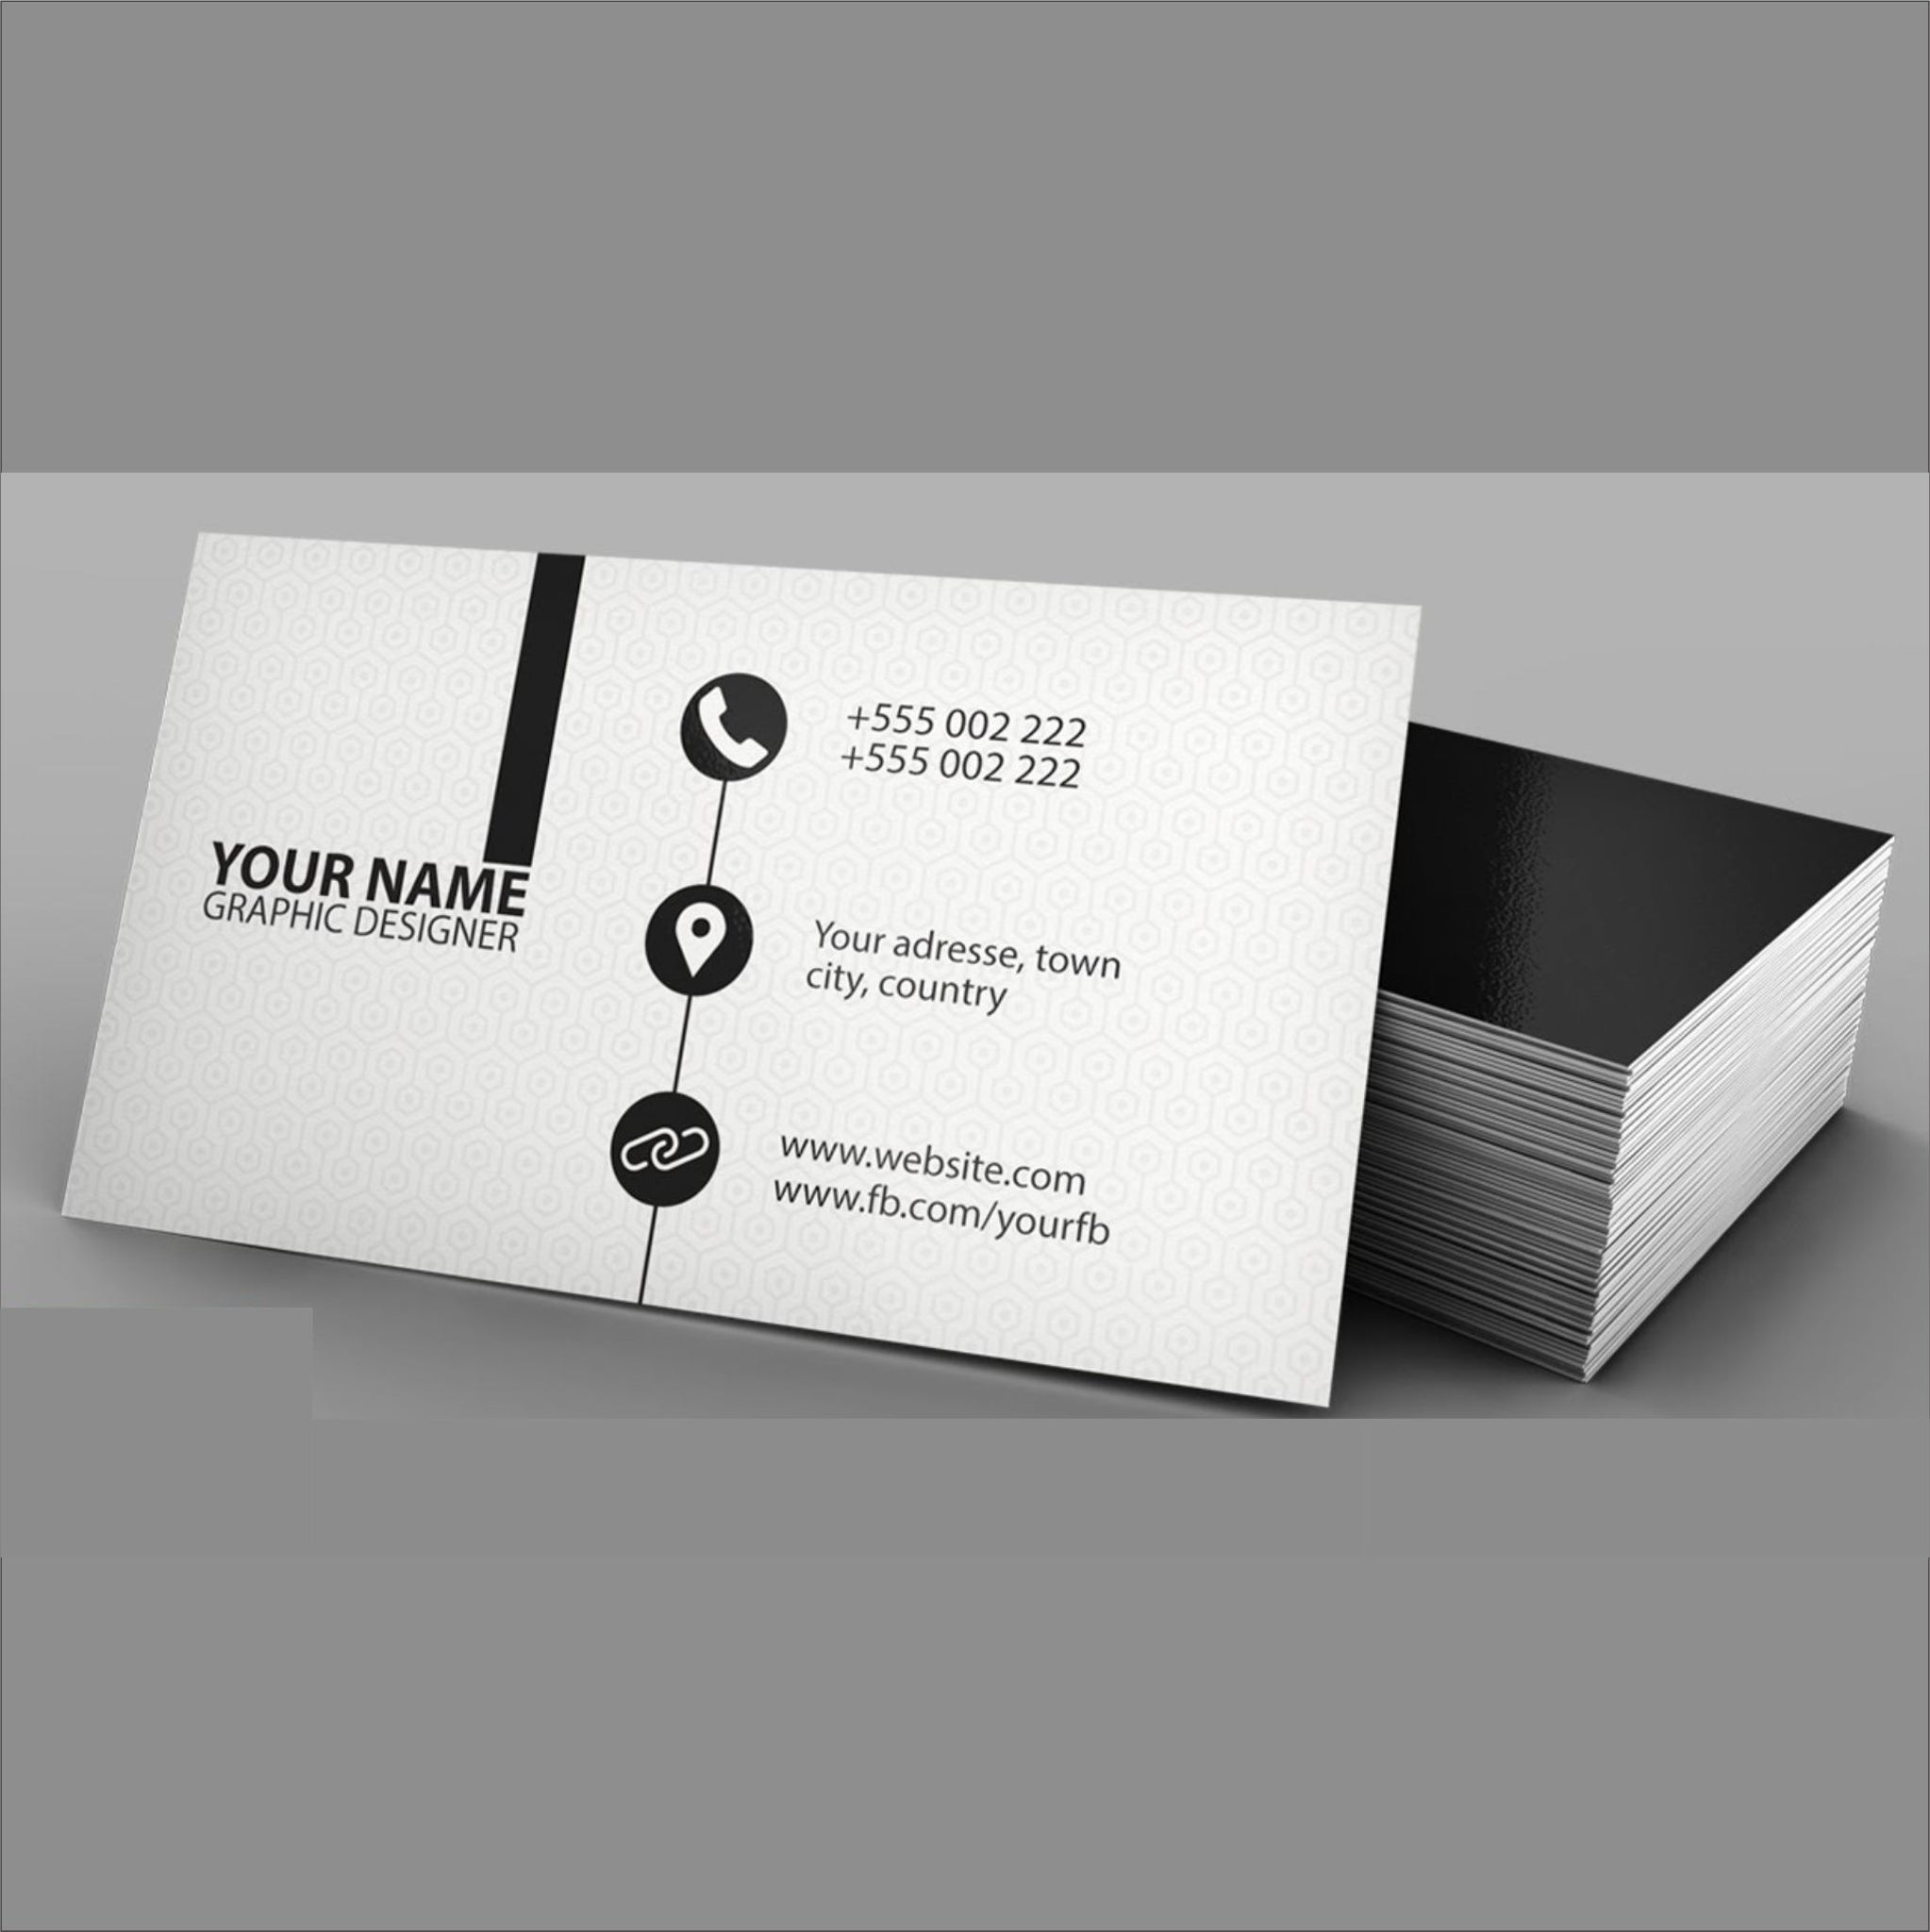 Magnificent cheap business cards 500 contemporary business card african business cards choice image business card template colourmoves Choice Image